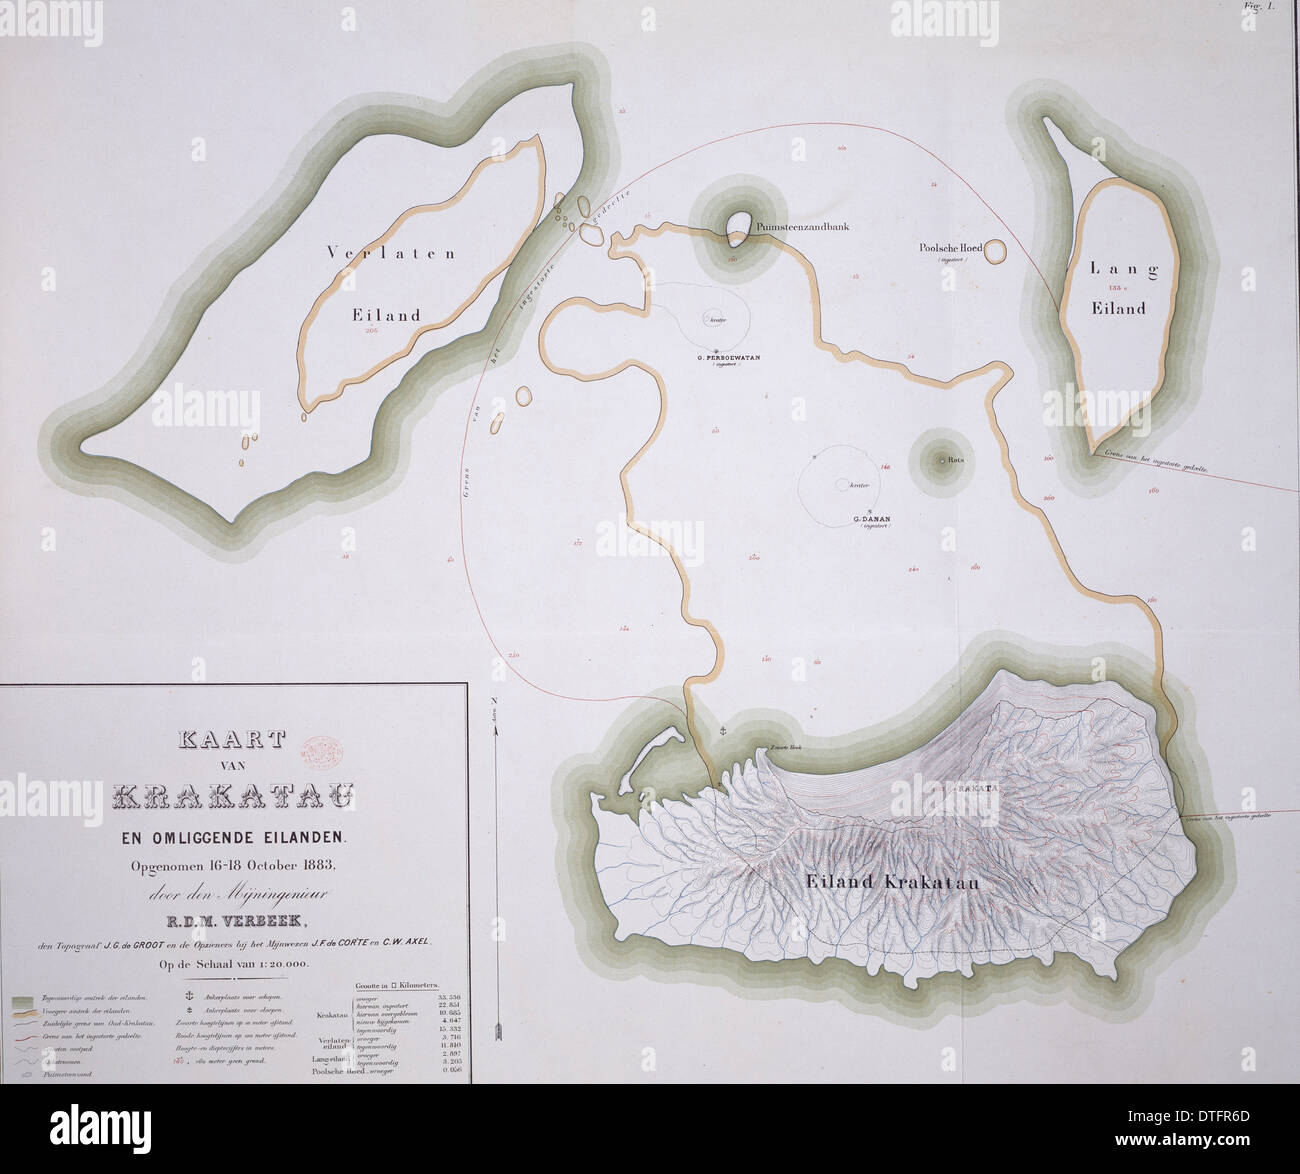 Krakatau map - Stock Image